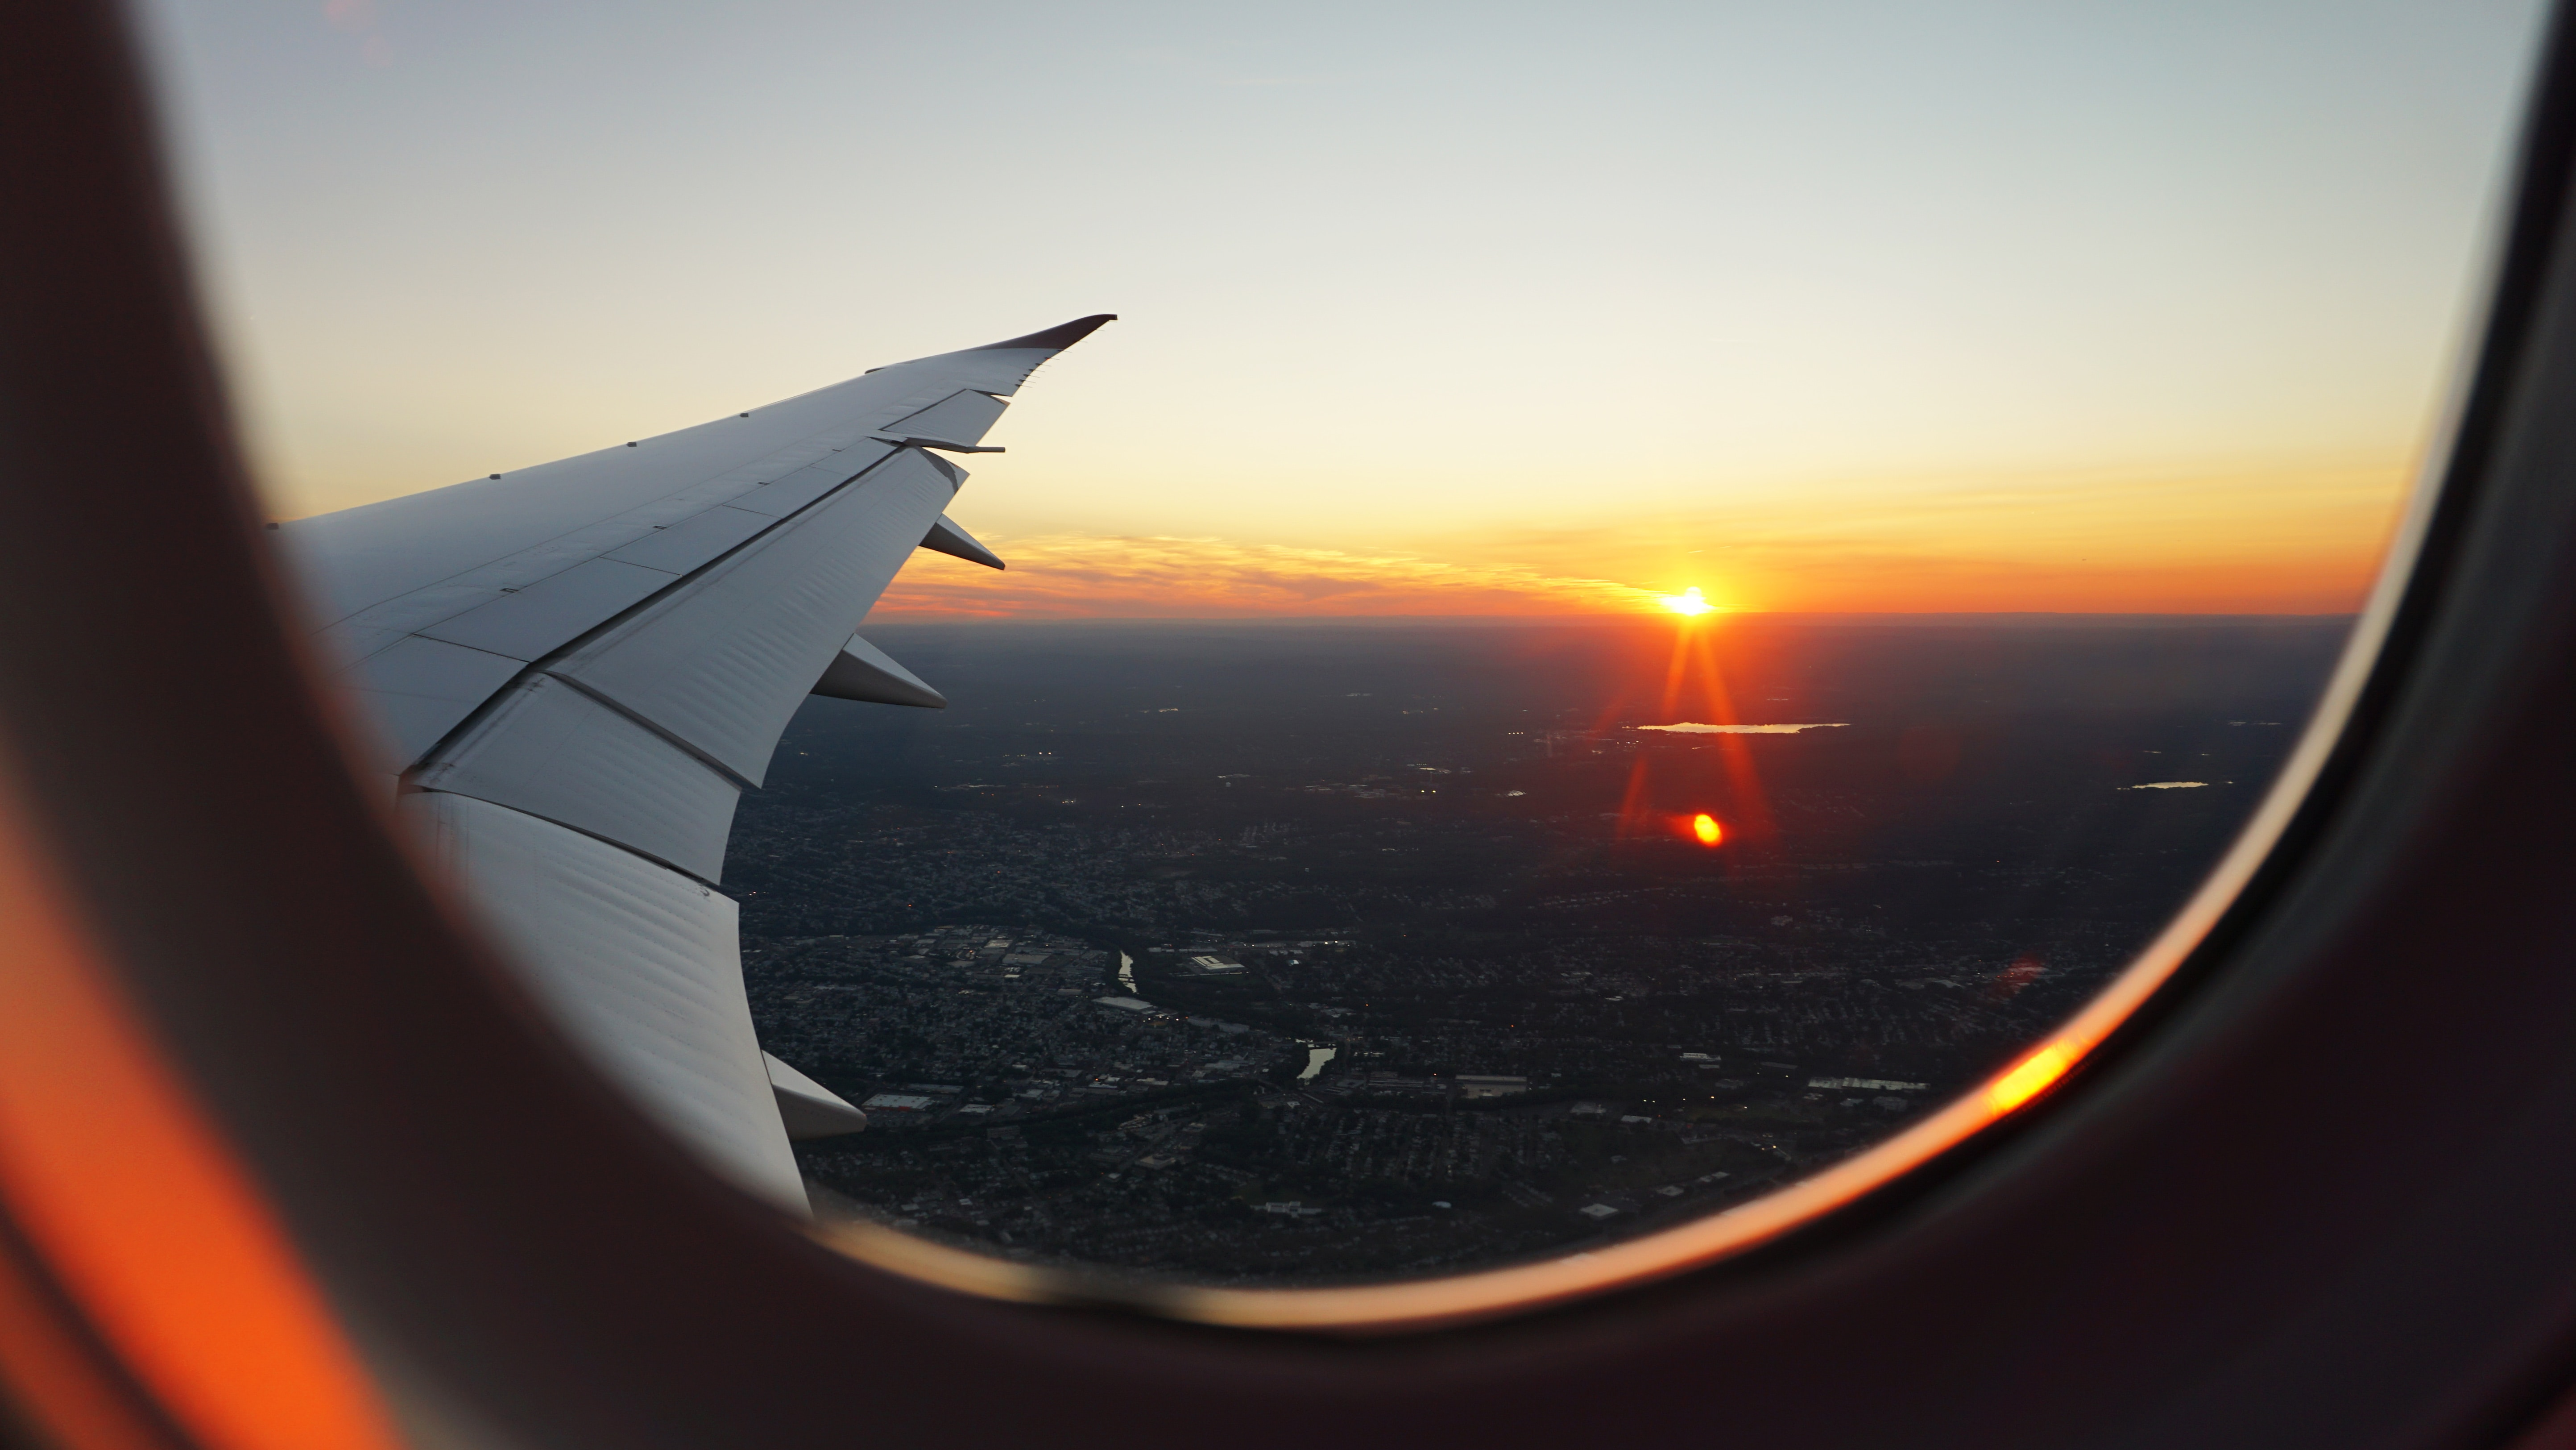 Booking through a travel agency will ensure your flights are secure.